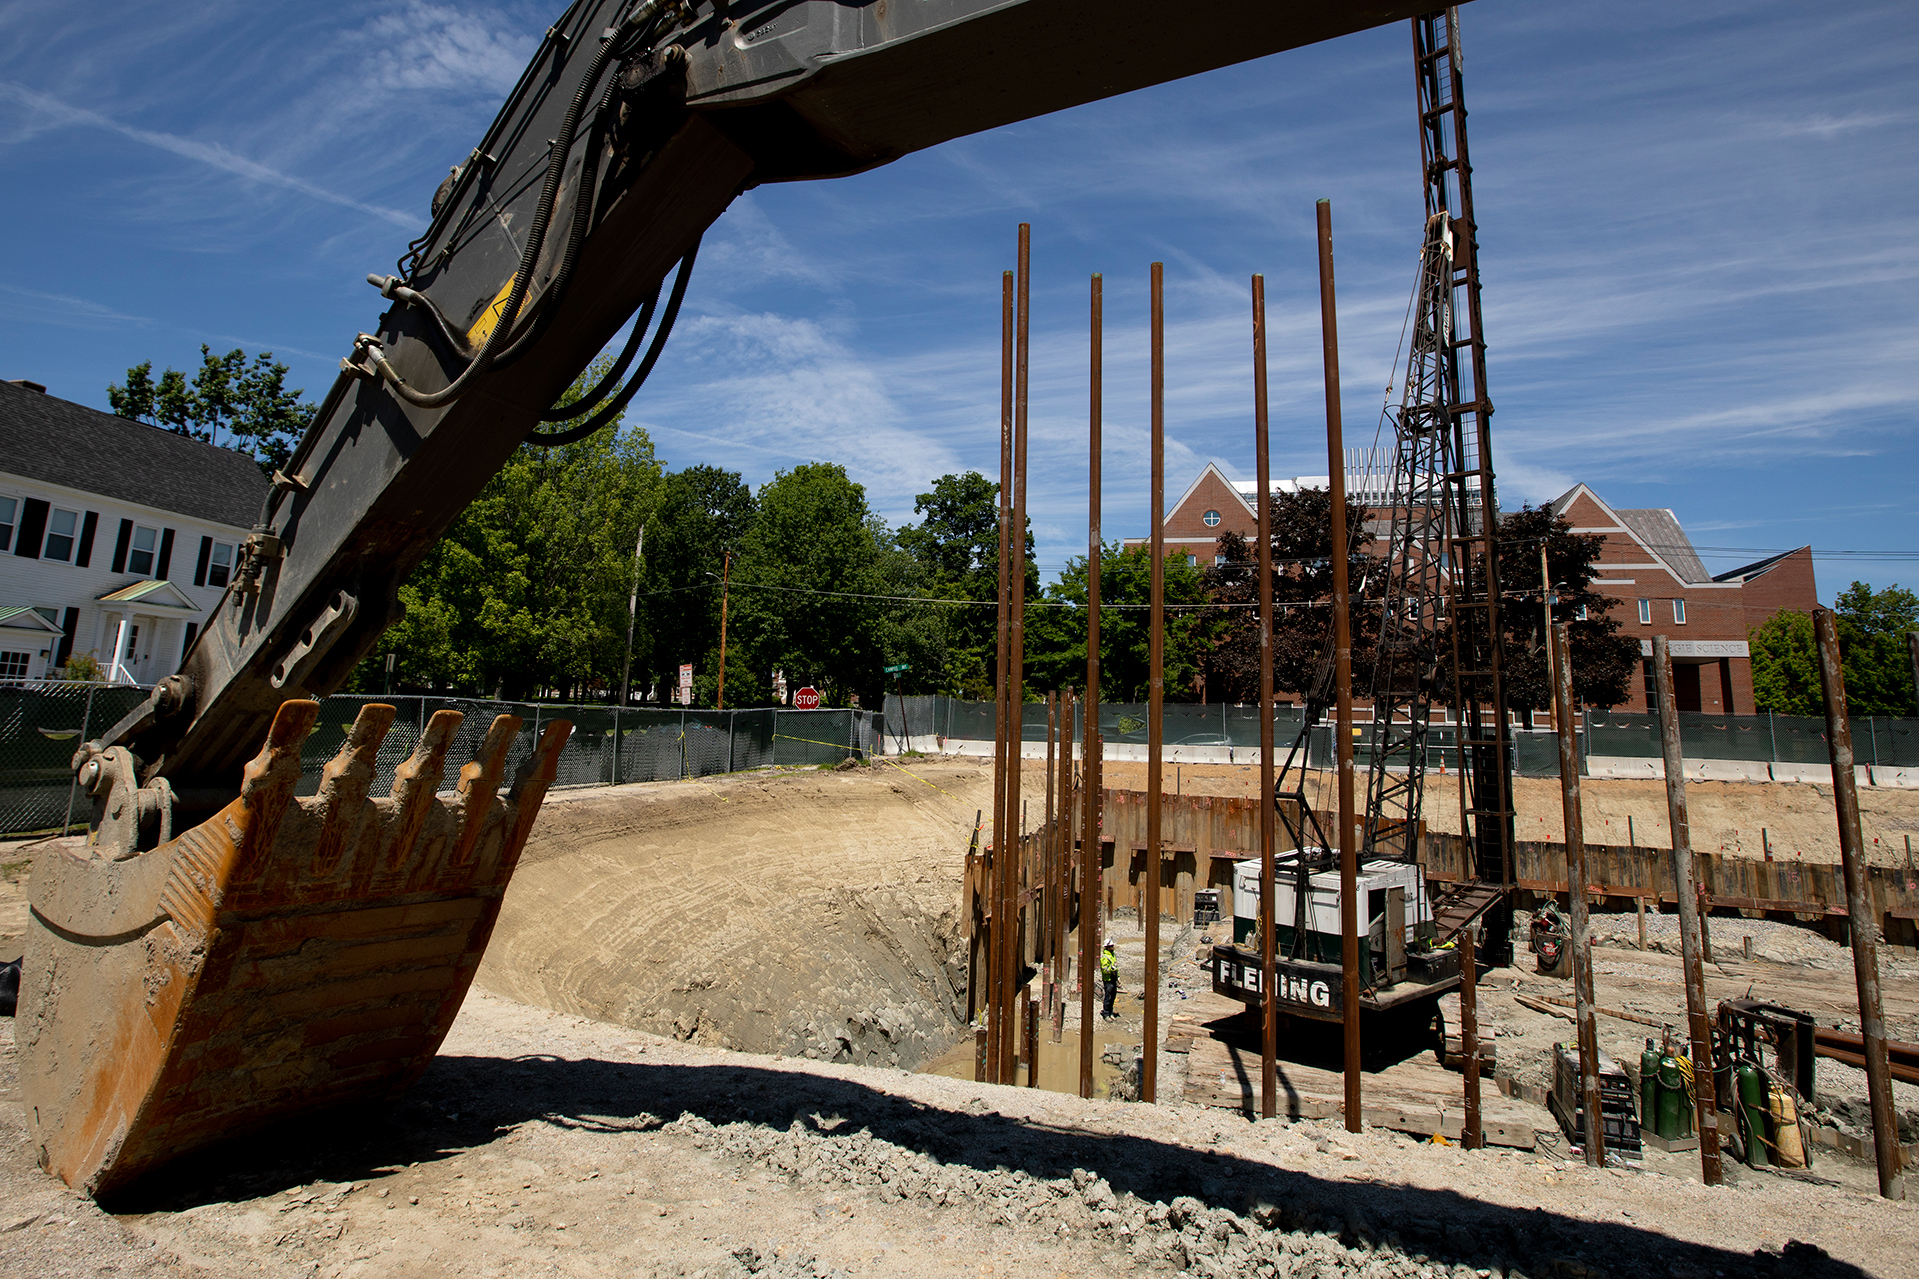 Framed by the arm of an excavator, pipe piles stand tall in the Bonney Science Center foundation hole on June 24, 2019. (Phyllis Graber Jensen/Bates College)